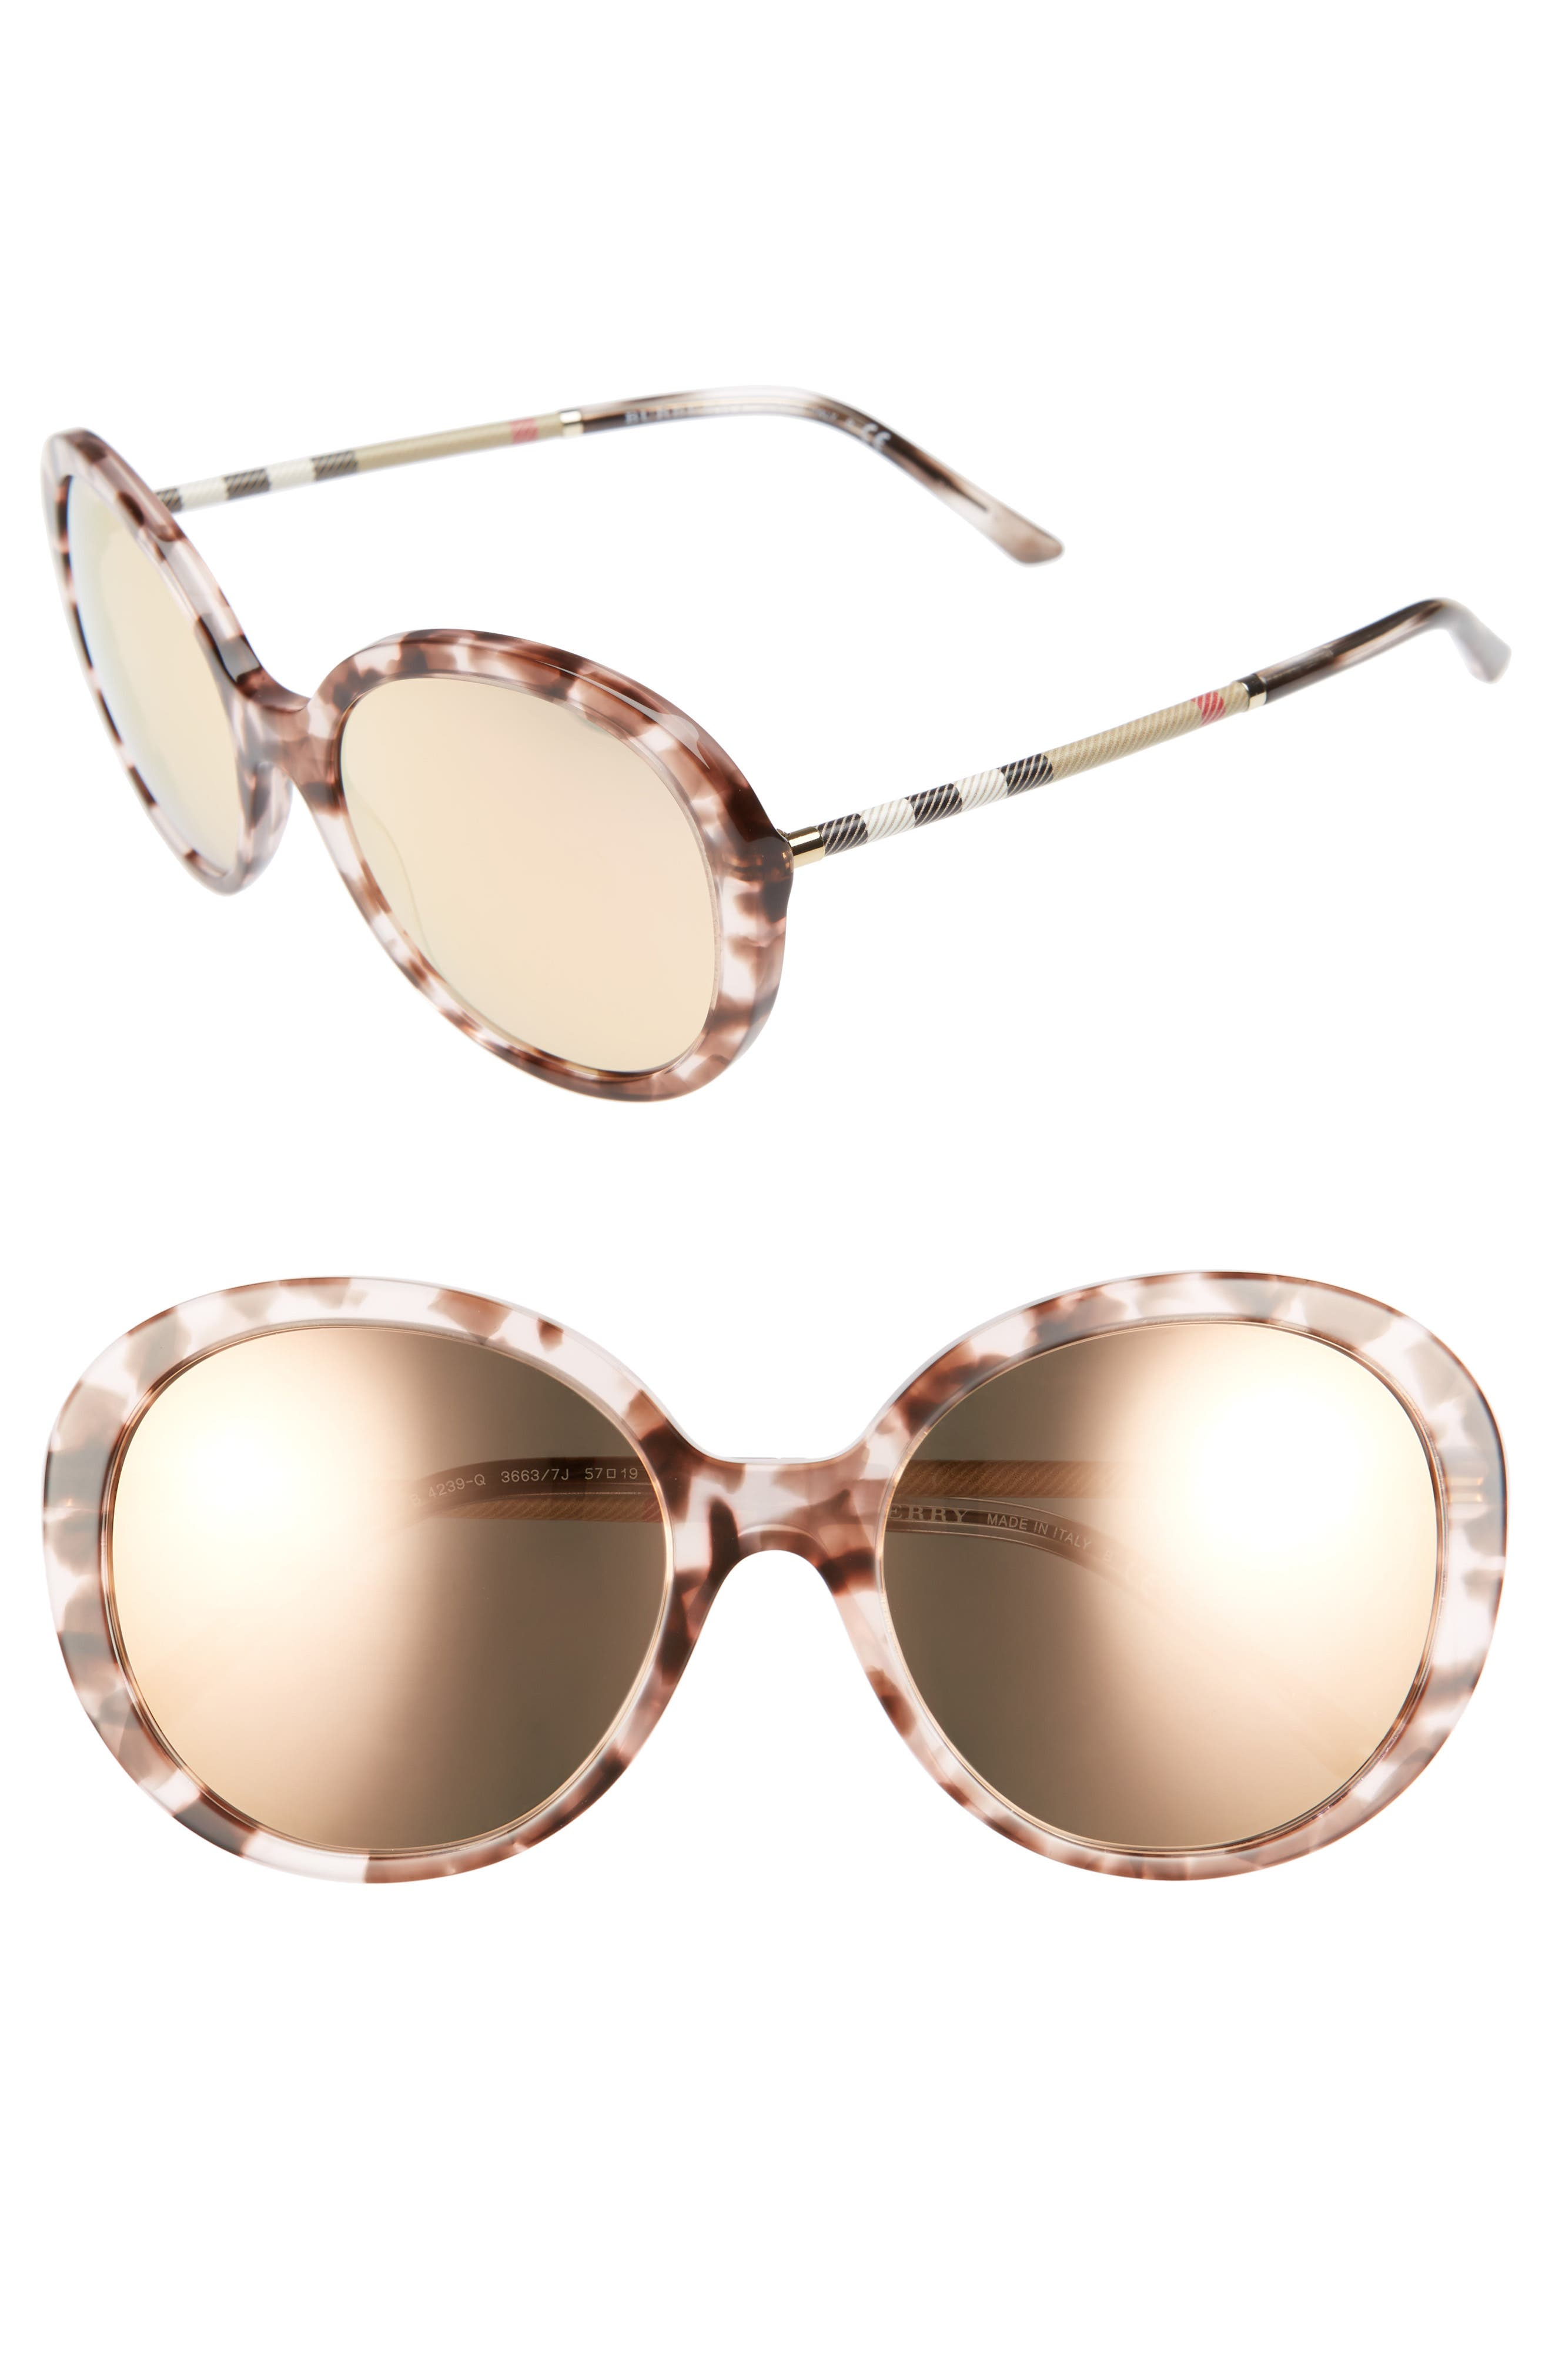 Burberry 57mm Check Temple Mirrored Round Frame Sunglasses